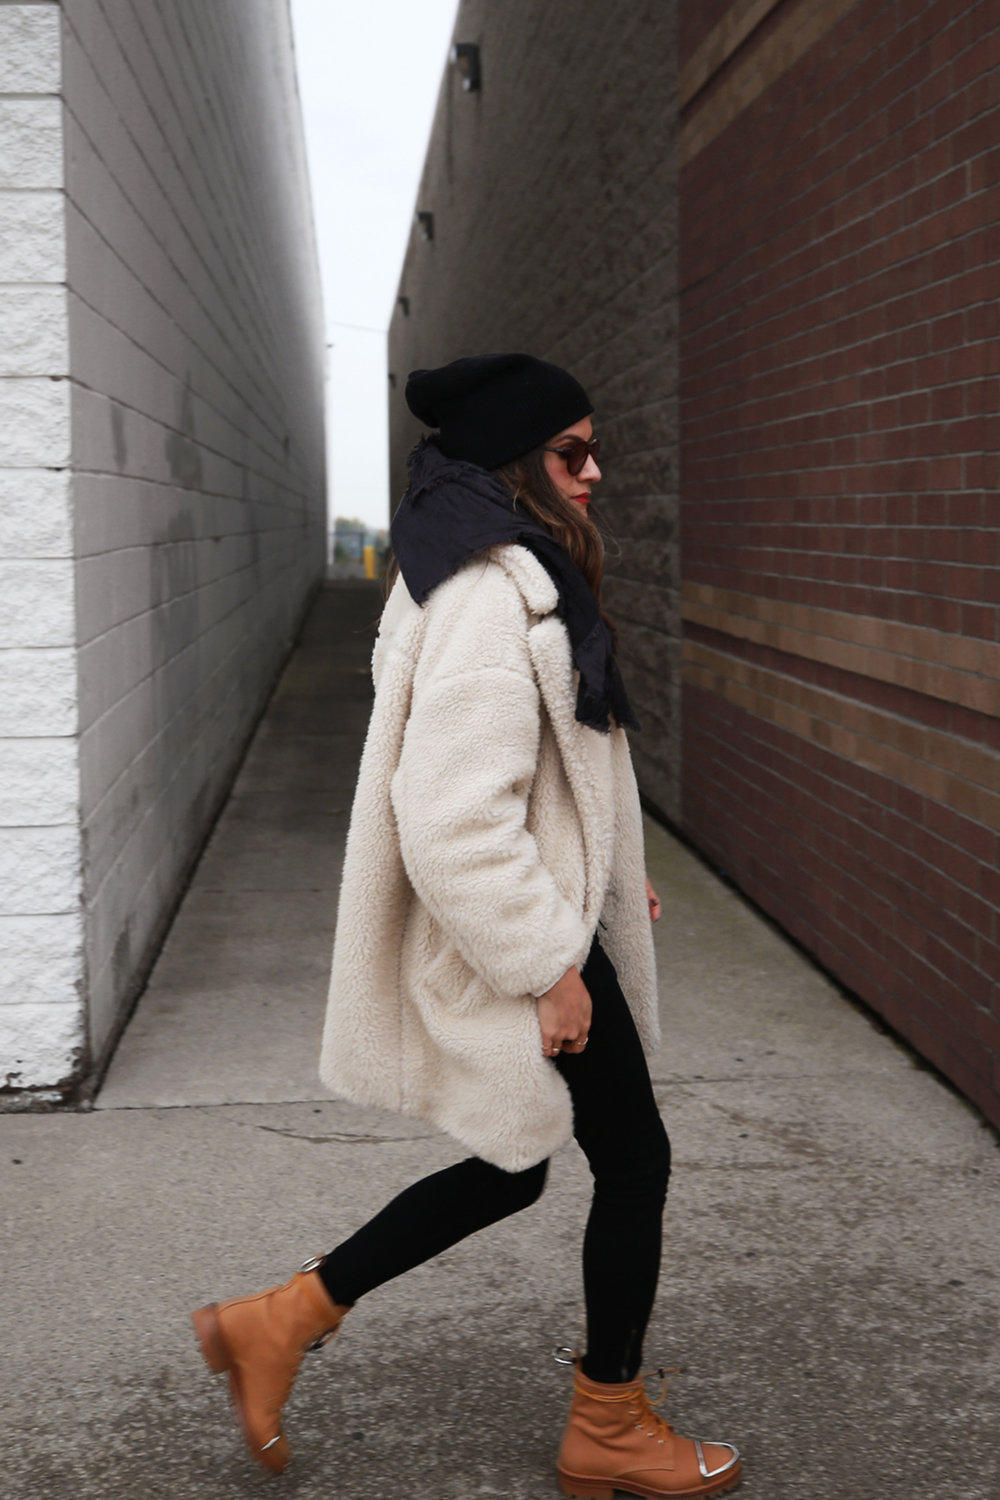 Best Conditioner for Winter Hair - Teddy Bear coat, Alexander Wang boots, Toronto street style - photos by Geoff Martin for woahstyle.com by Nathalie Martin_2598.jpg